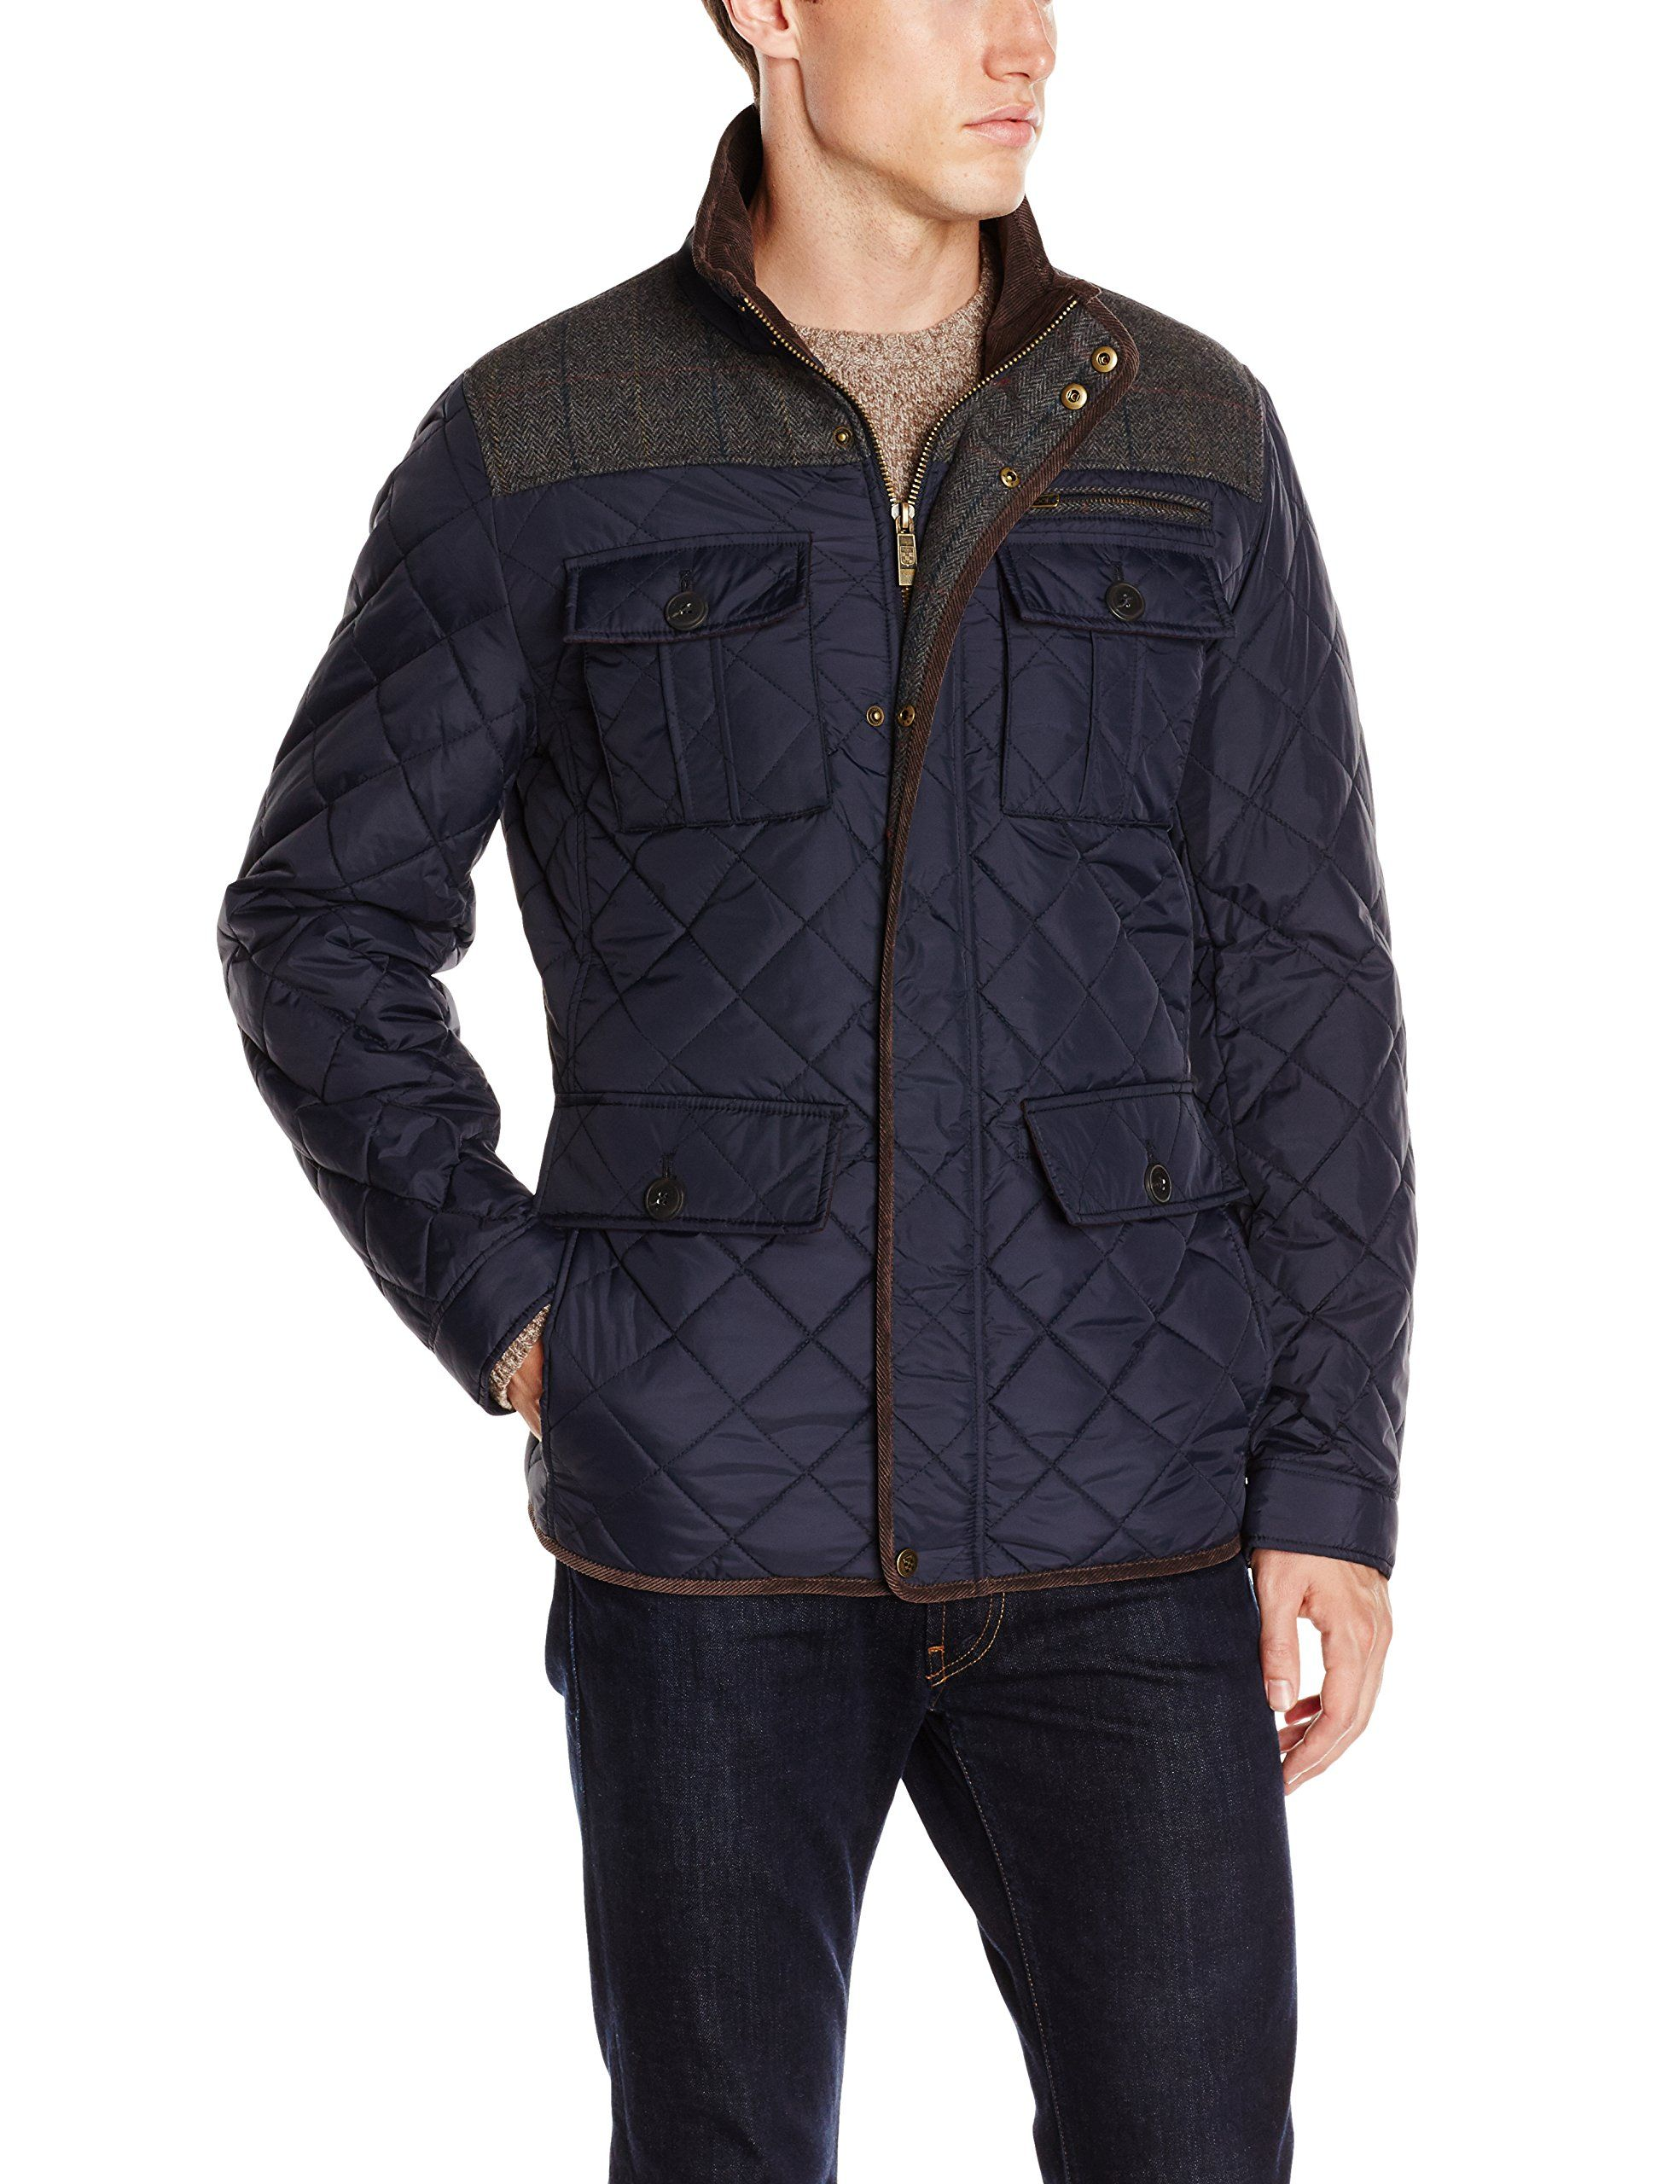 greywhite rust softshell p quilted c biogqqf simpson vince zip sweater camuto size outerwear asymmetrical jessica belted mxghhzd guide quilt coats jacket